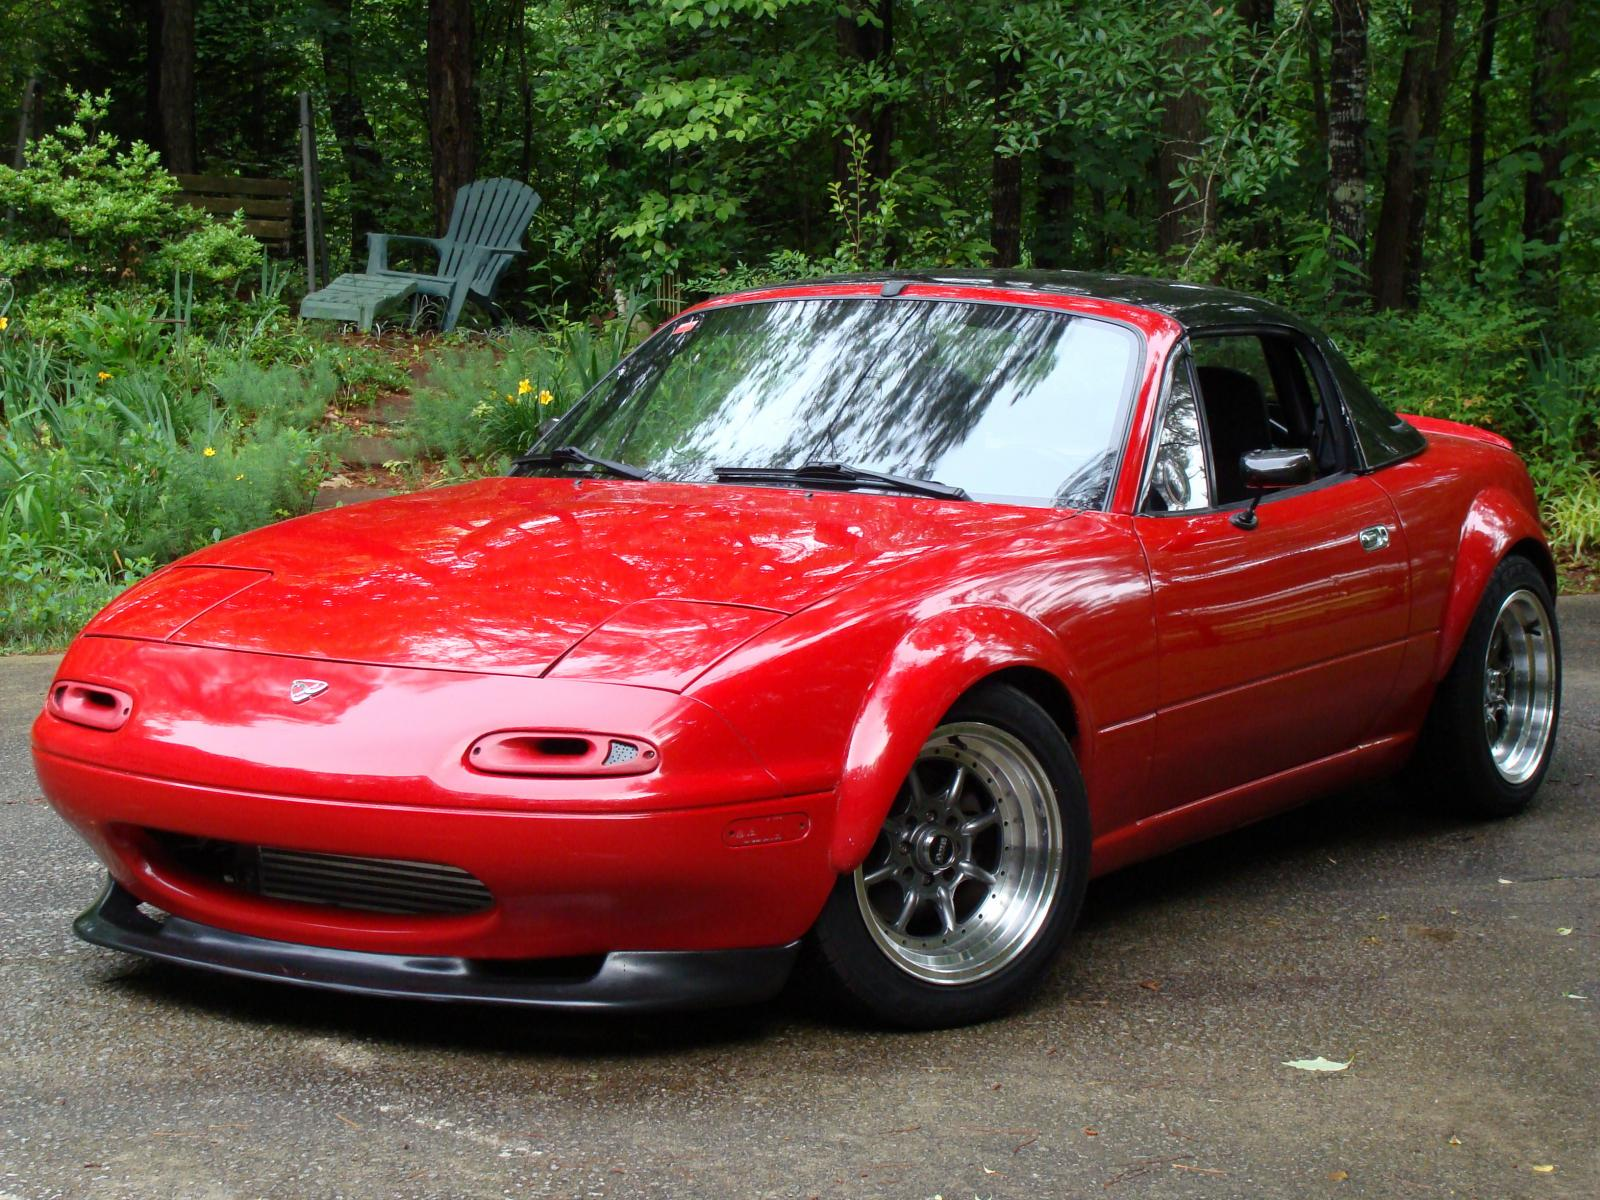 1995 mazda mx 5 miata information and photos zombiedrive. Black Bedroom Furniture Sets. Home Design Ideas